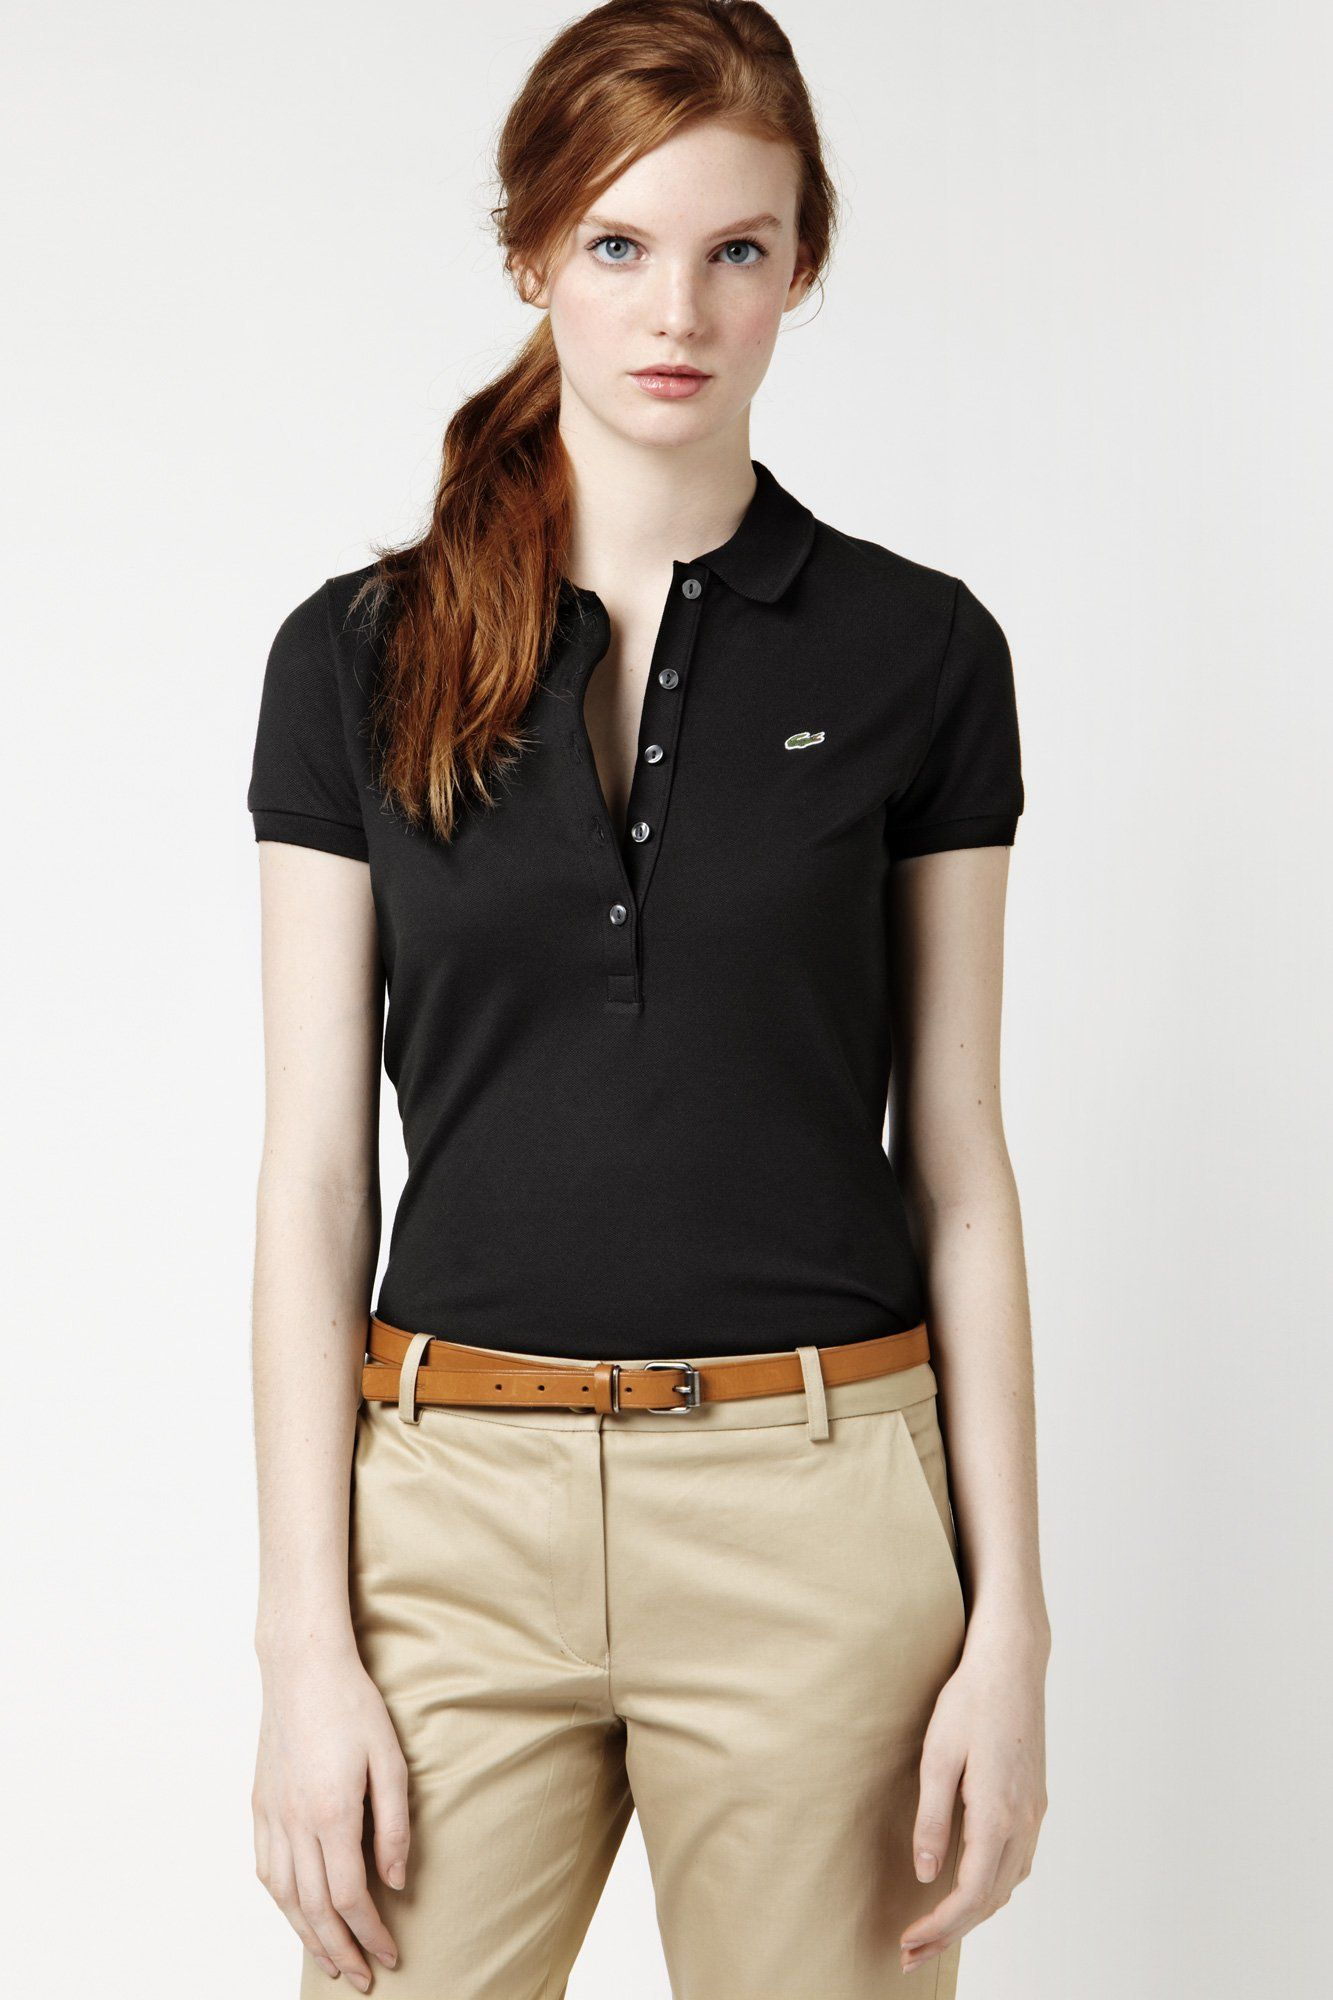 88dd752930 Lacoste Polo | Lacoste | Polo shirt women, Polo shirt outfit women's ...